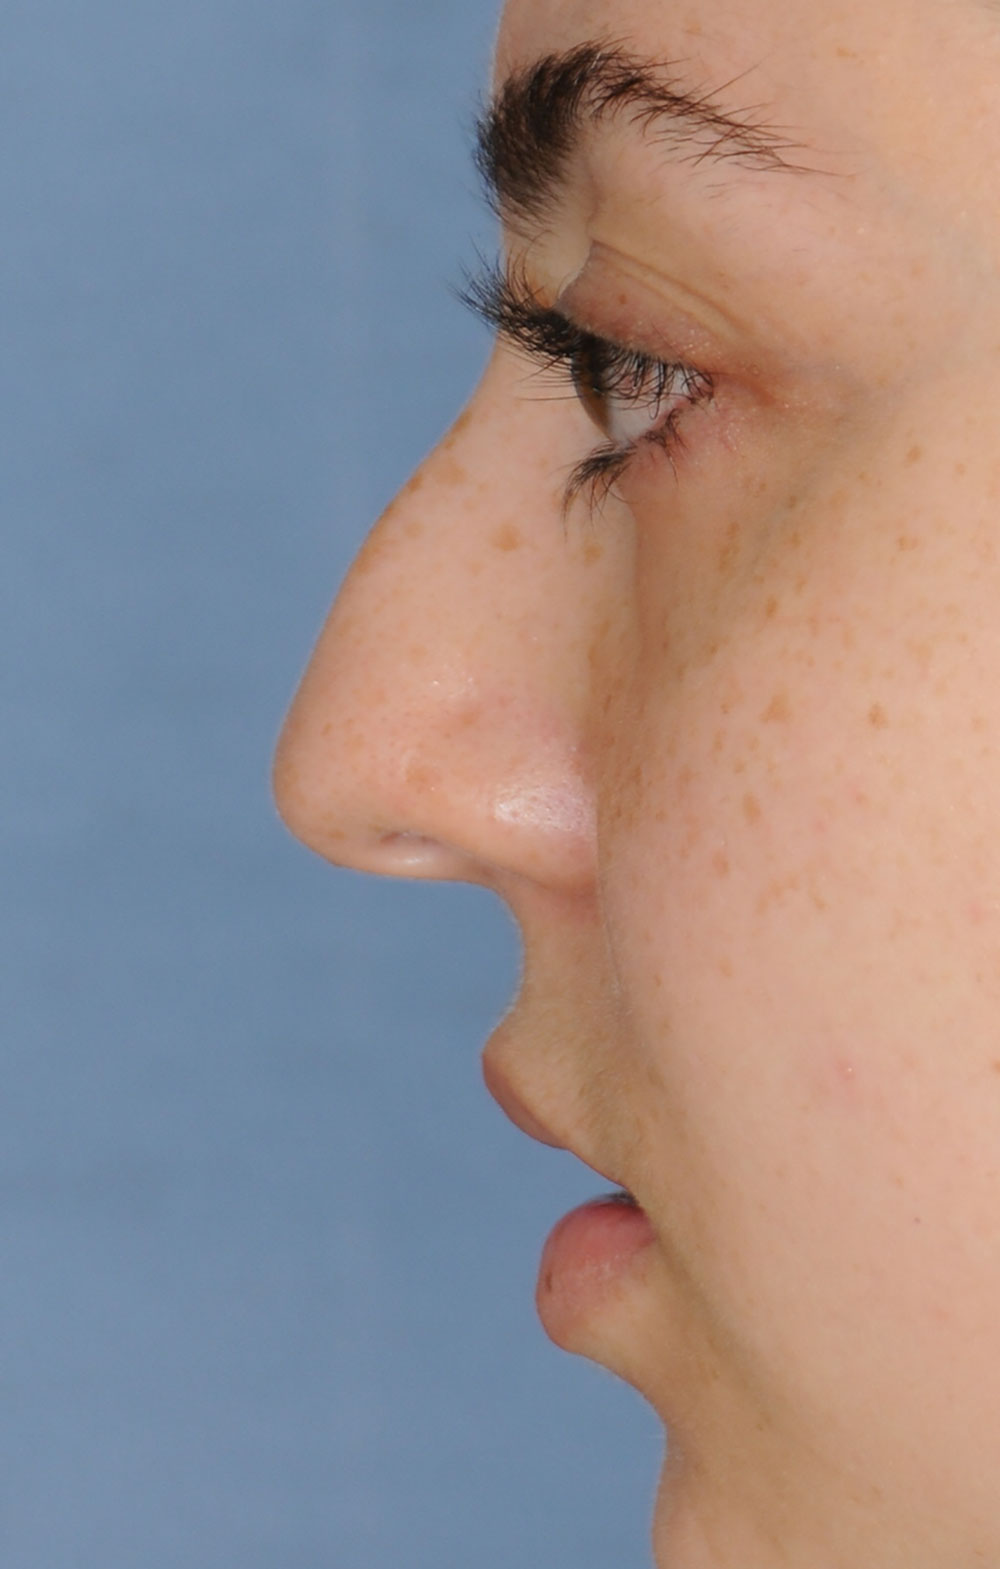 Rhinoplasty for a Bulbous Nasal Tip, Prominent Nasal Bridge, Short Nose / Columella and Lip Fat Transfer for Small Thin Lateral Upper Outer Lips Before Left Profile Close Up View